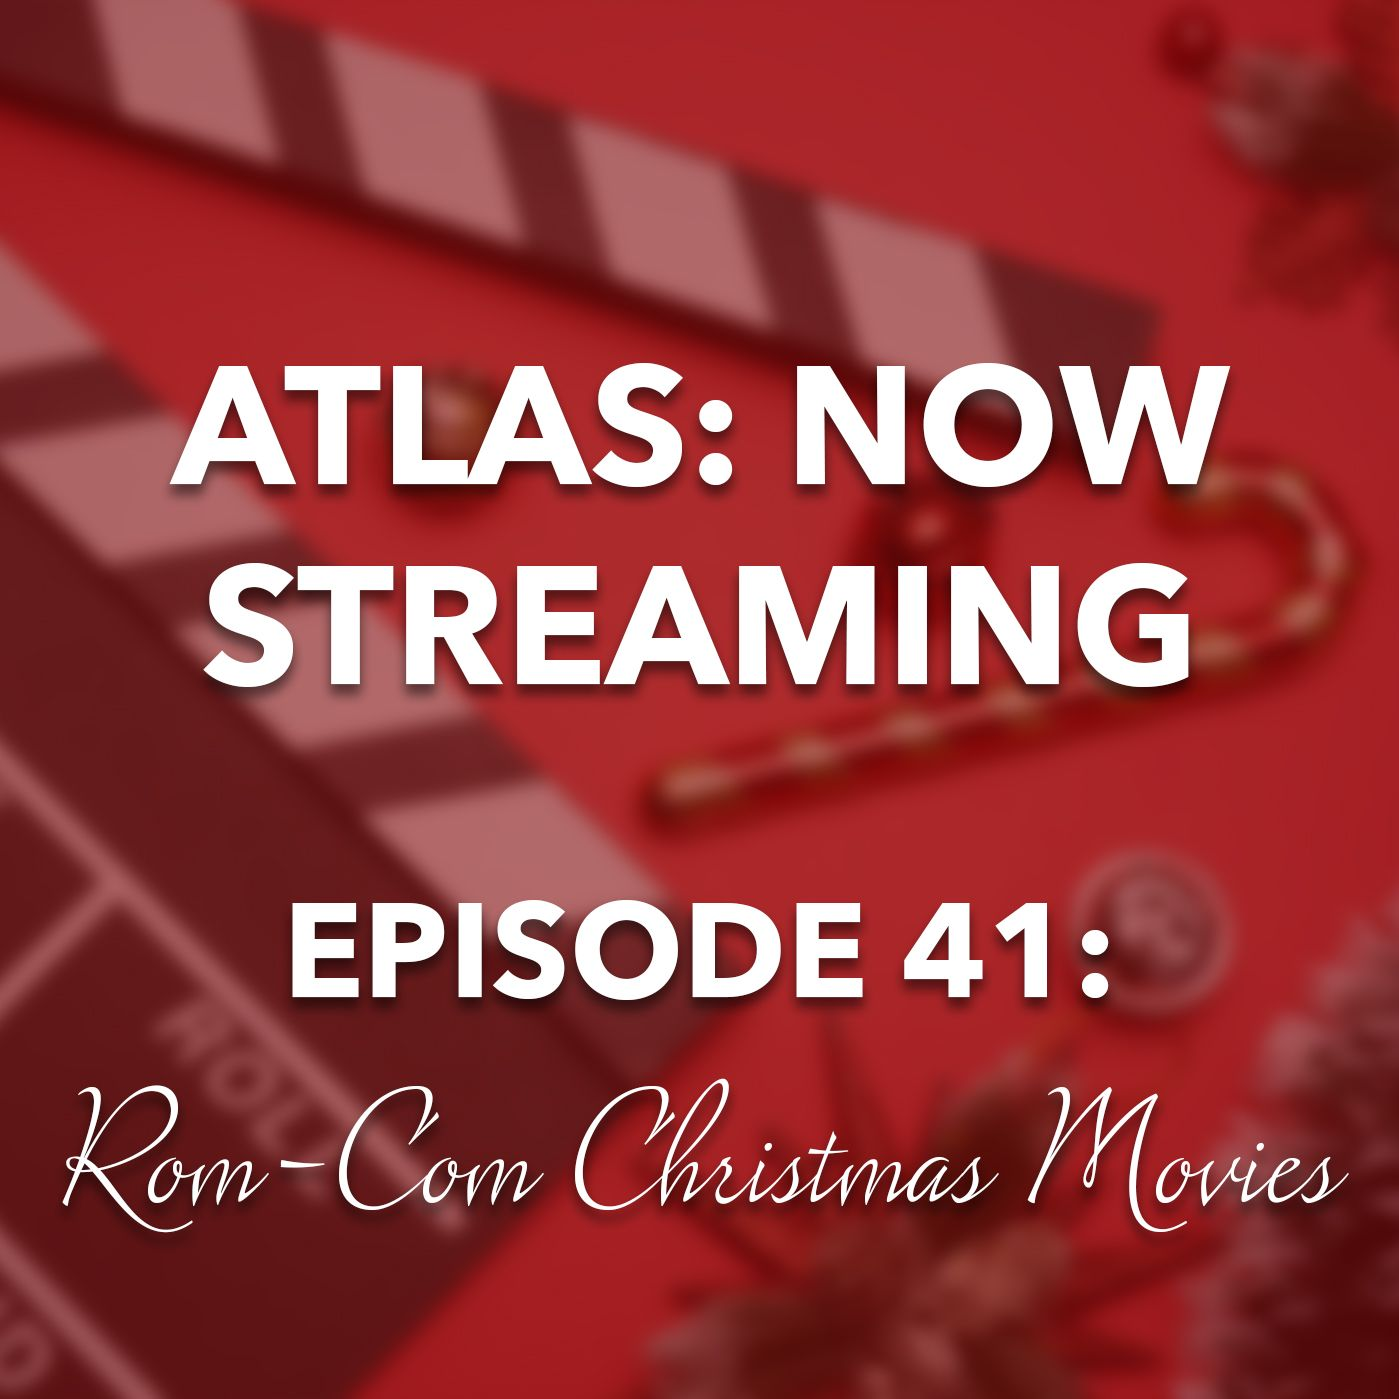 Romantic Christmas Movies - Atlas: Now Streaming 41